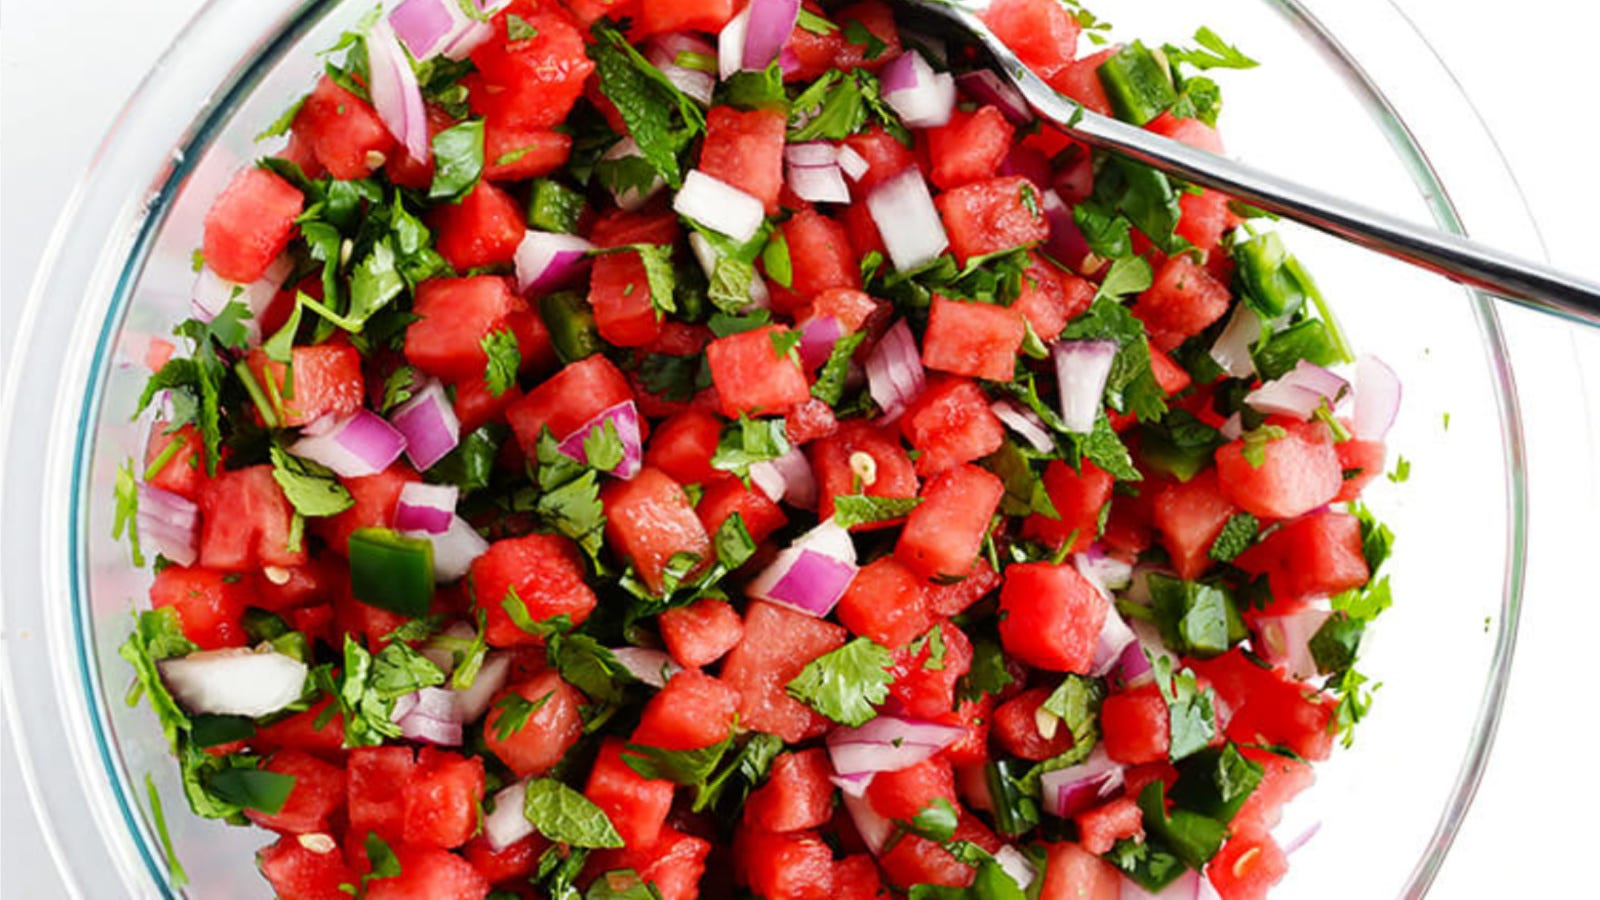 A glass bowl full of watermelon salsa made with diced watermelon, red onion, mint, cilantro and jalapeno.